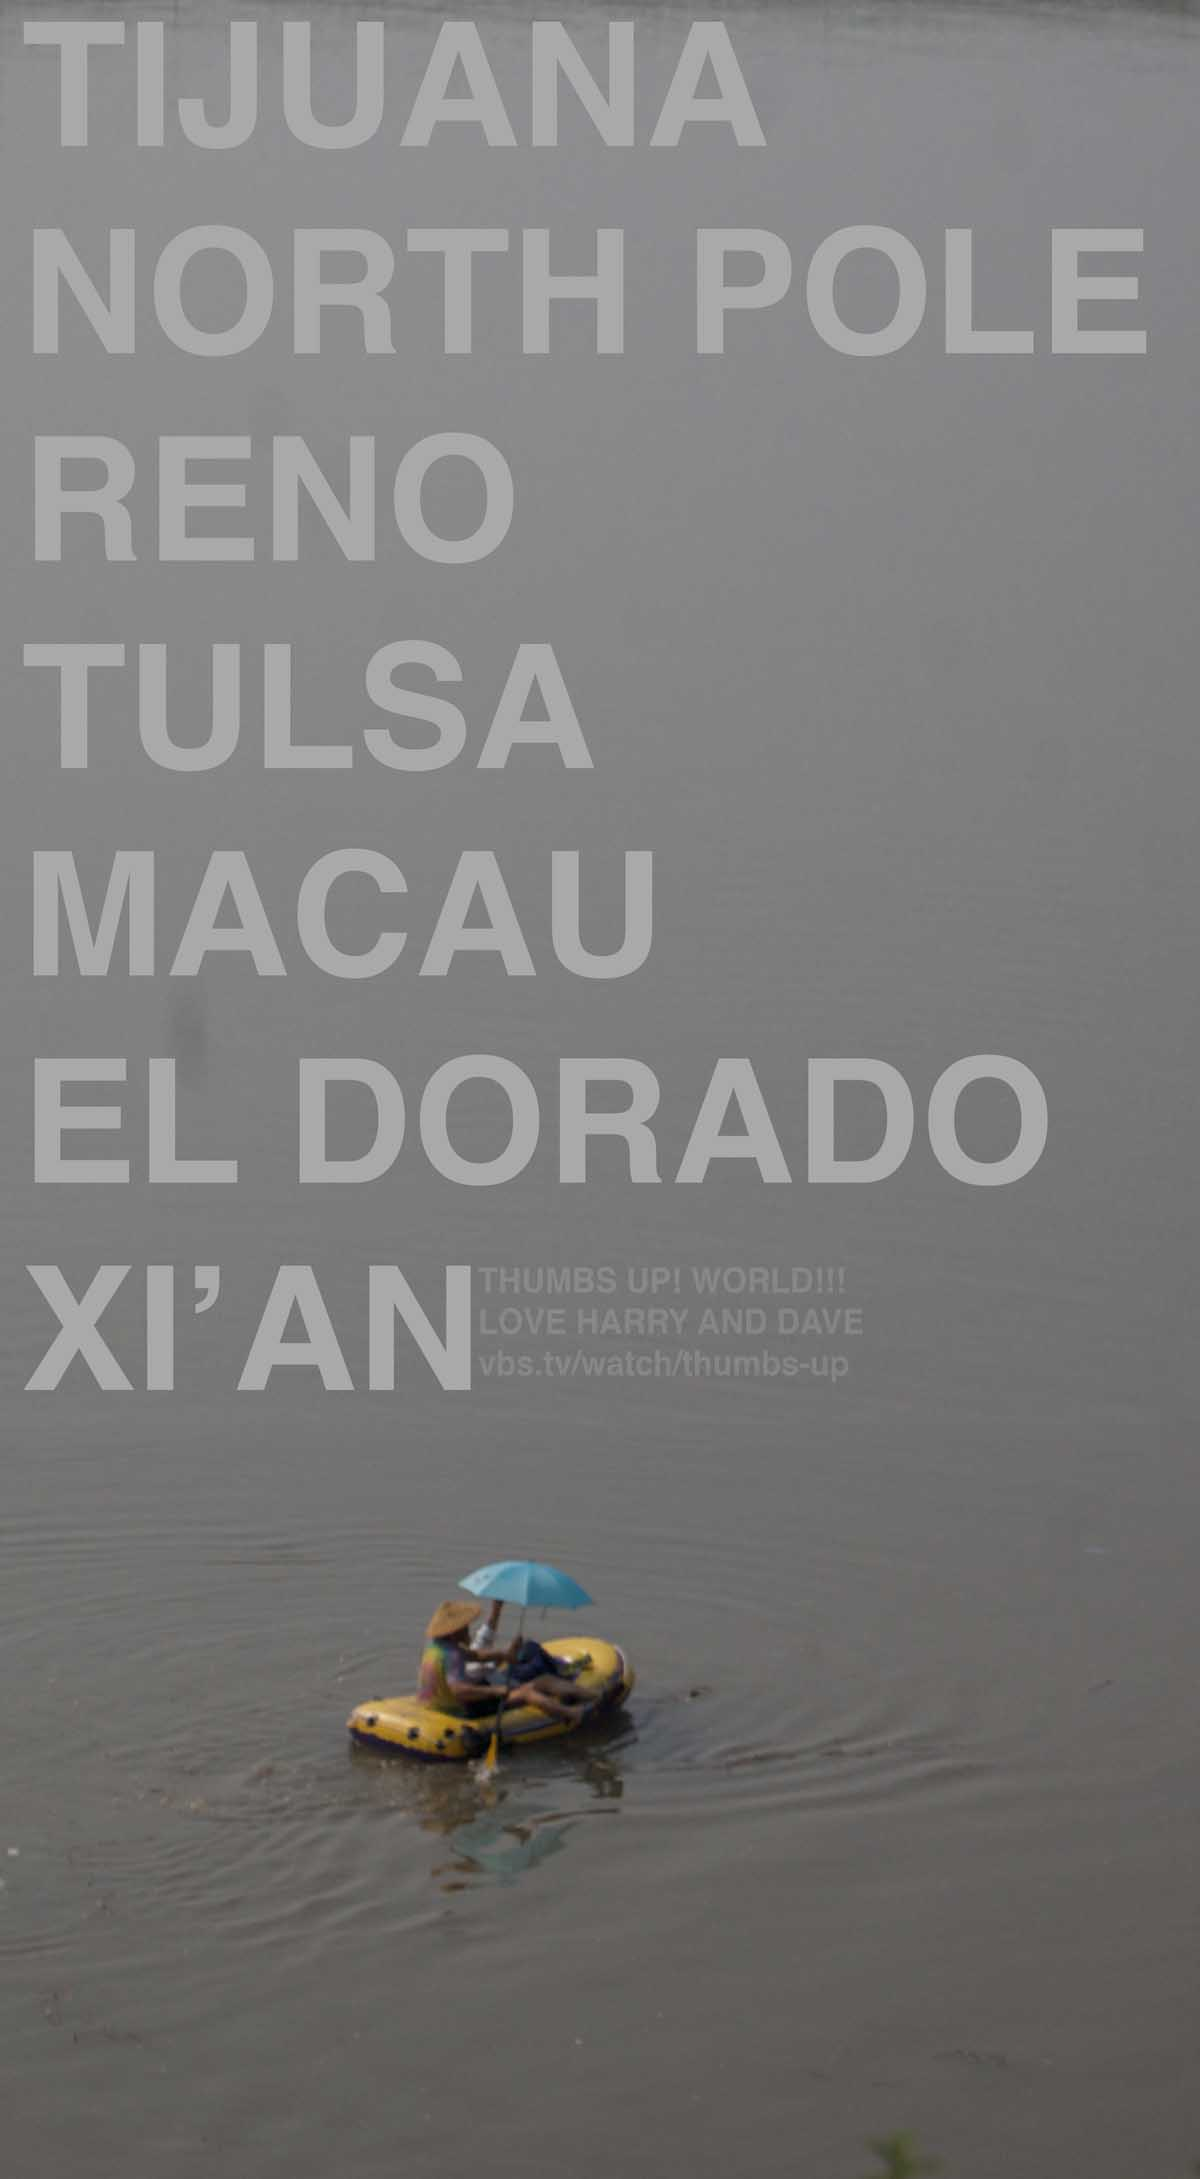 Thumbs Up! hitchhiking show poster - floating raft - Tijuana, North Pole, Reno, Tulsa, Macau, El Dorado, Xi'an